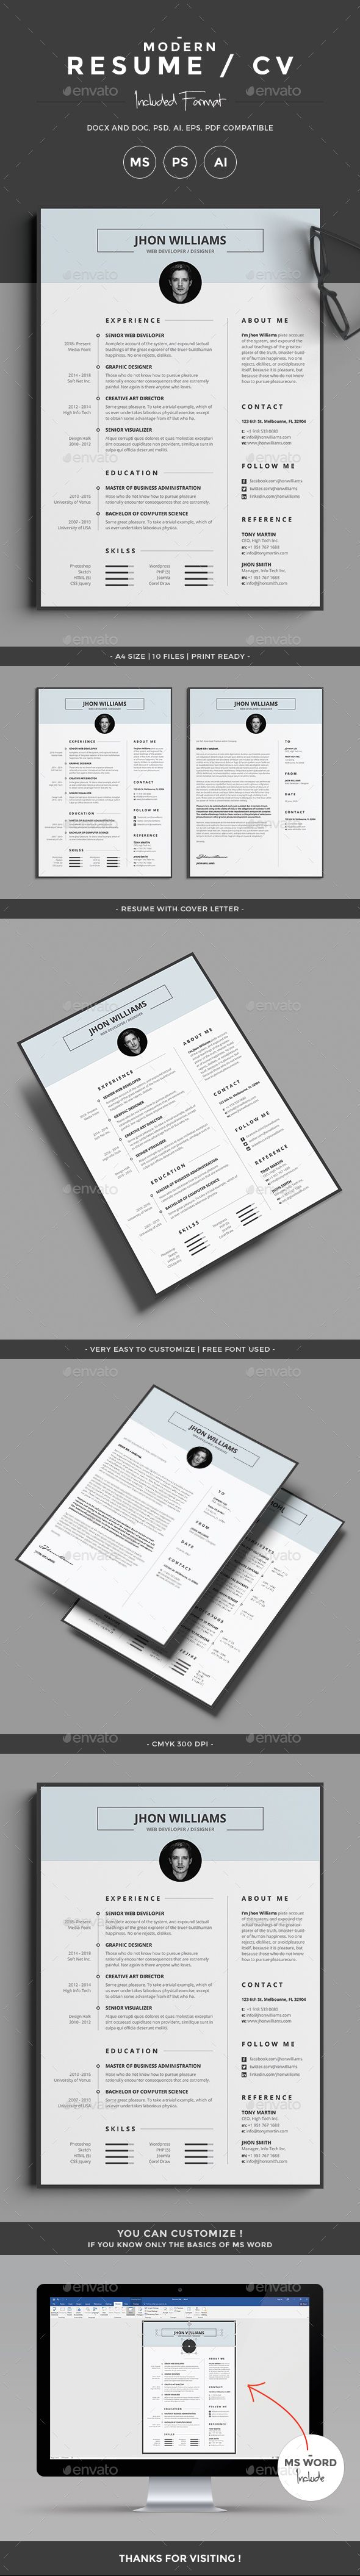 Best 25 Simple cv template ideas on Pinterest